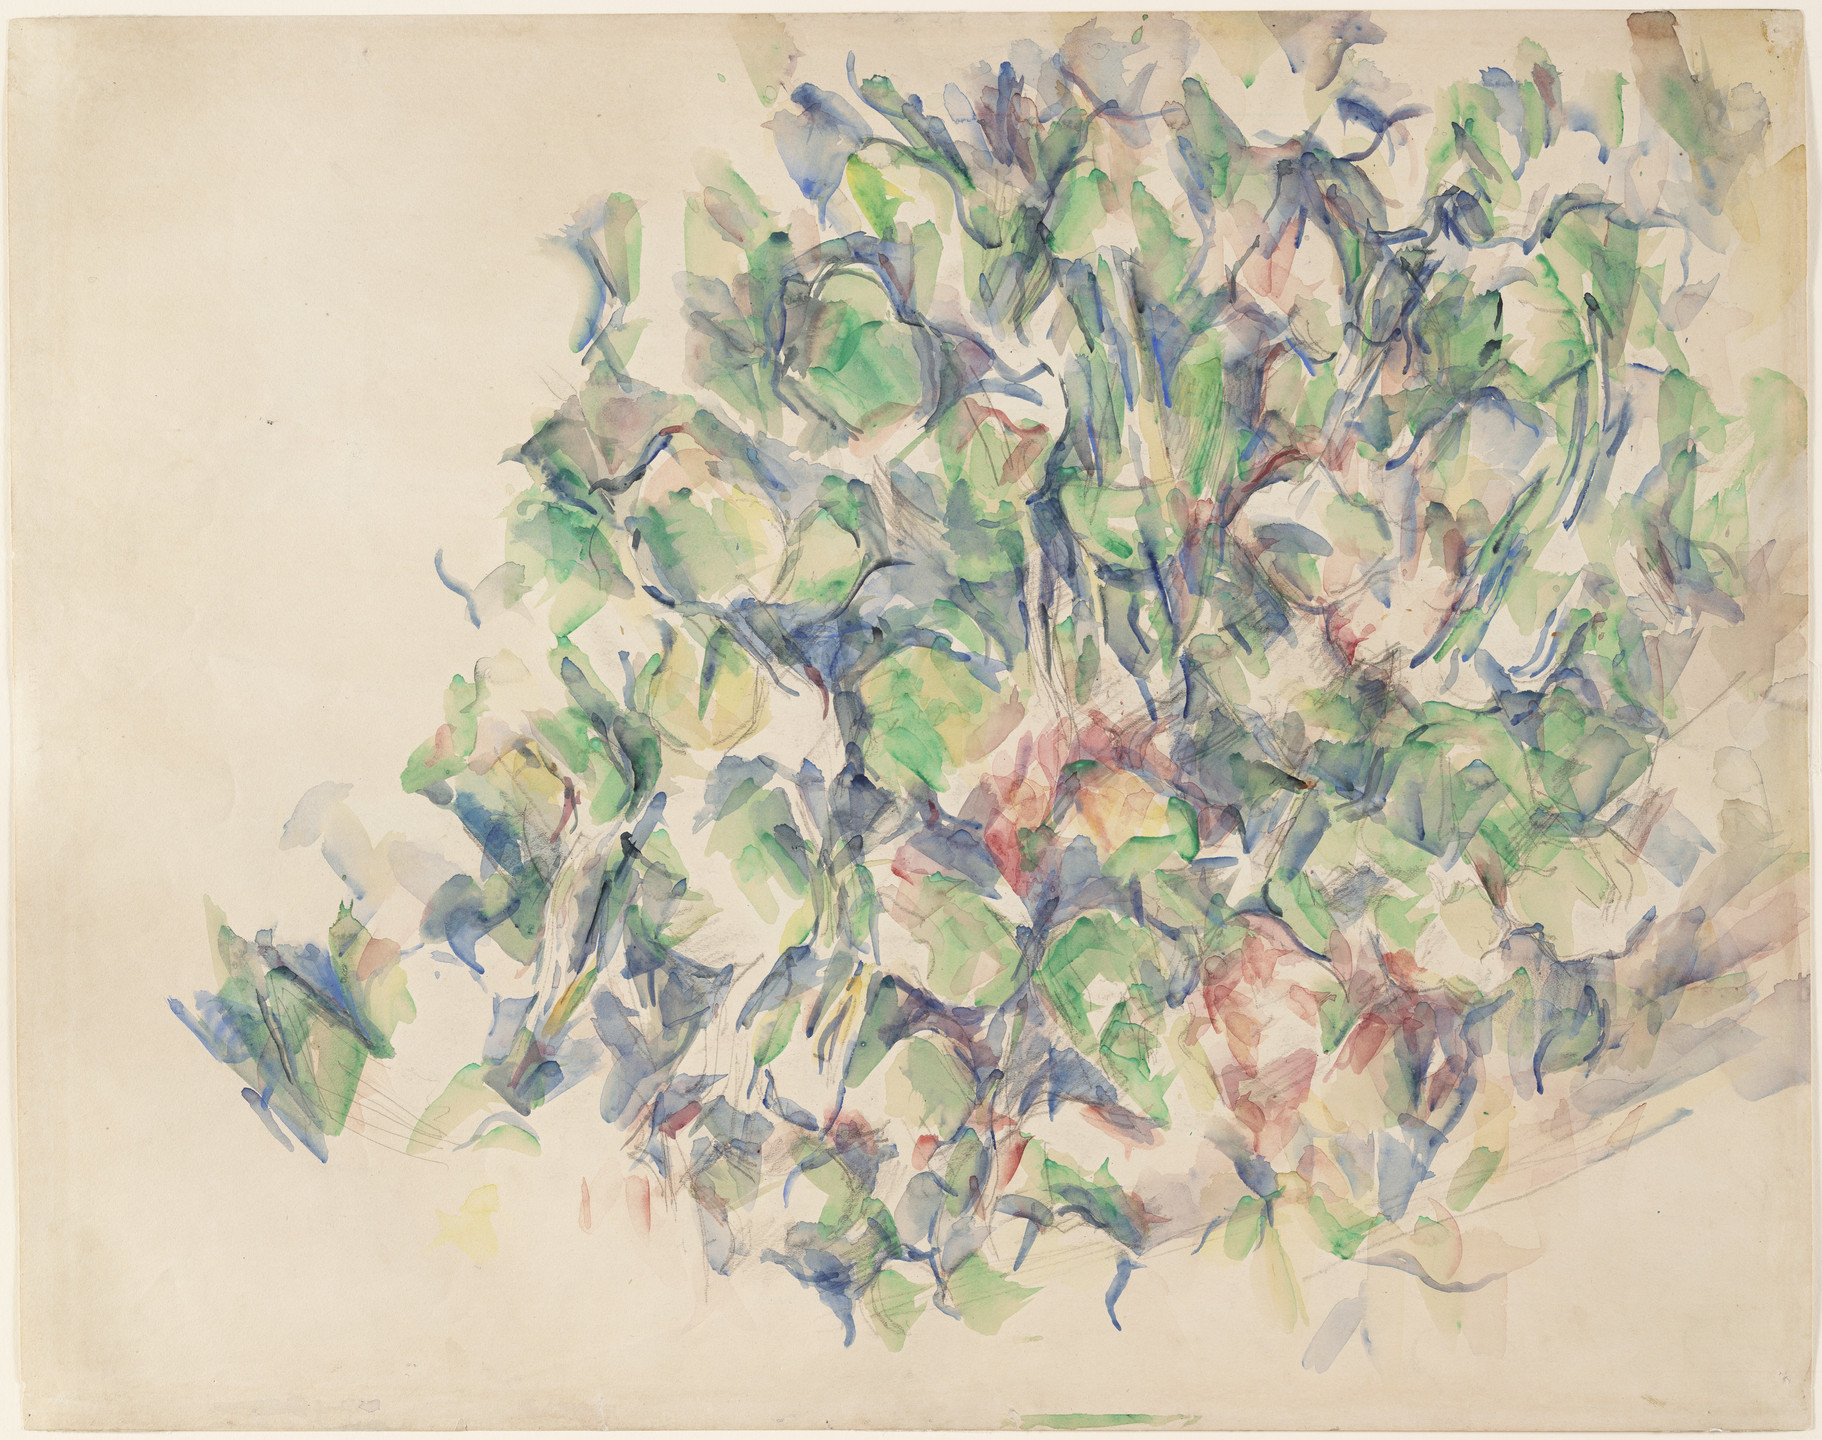 Paul Cézanne. Foliage (recto); Study of Trees (verso). 1895